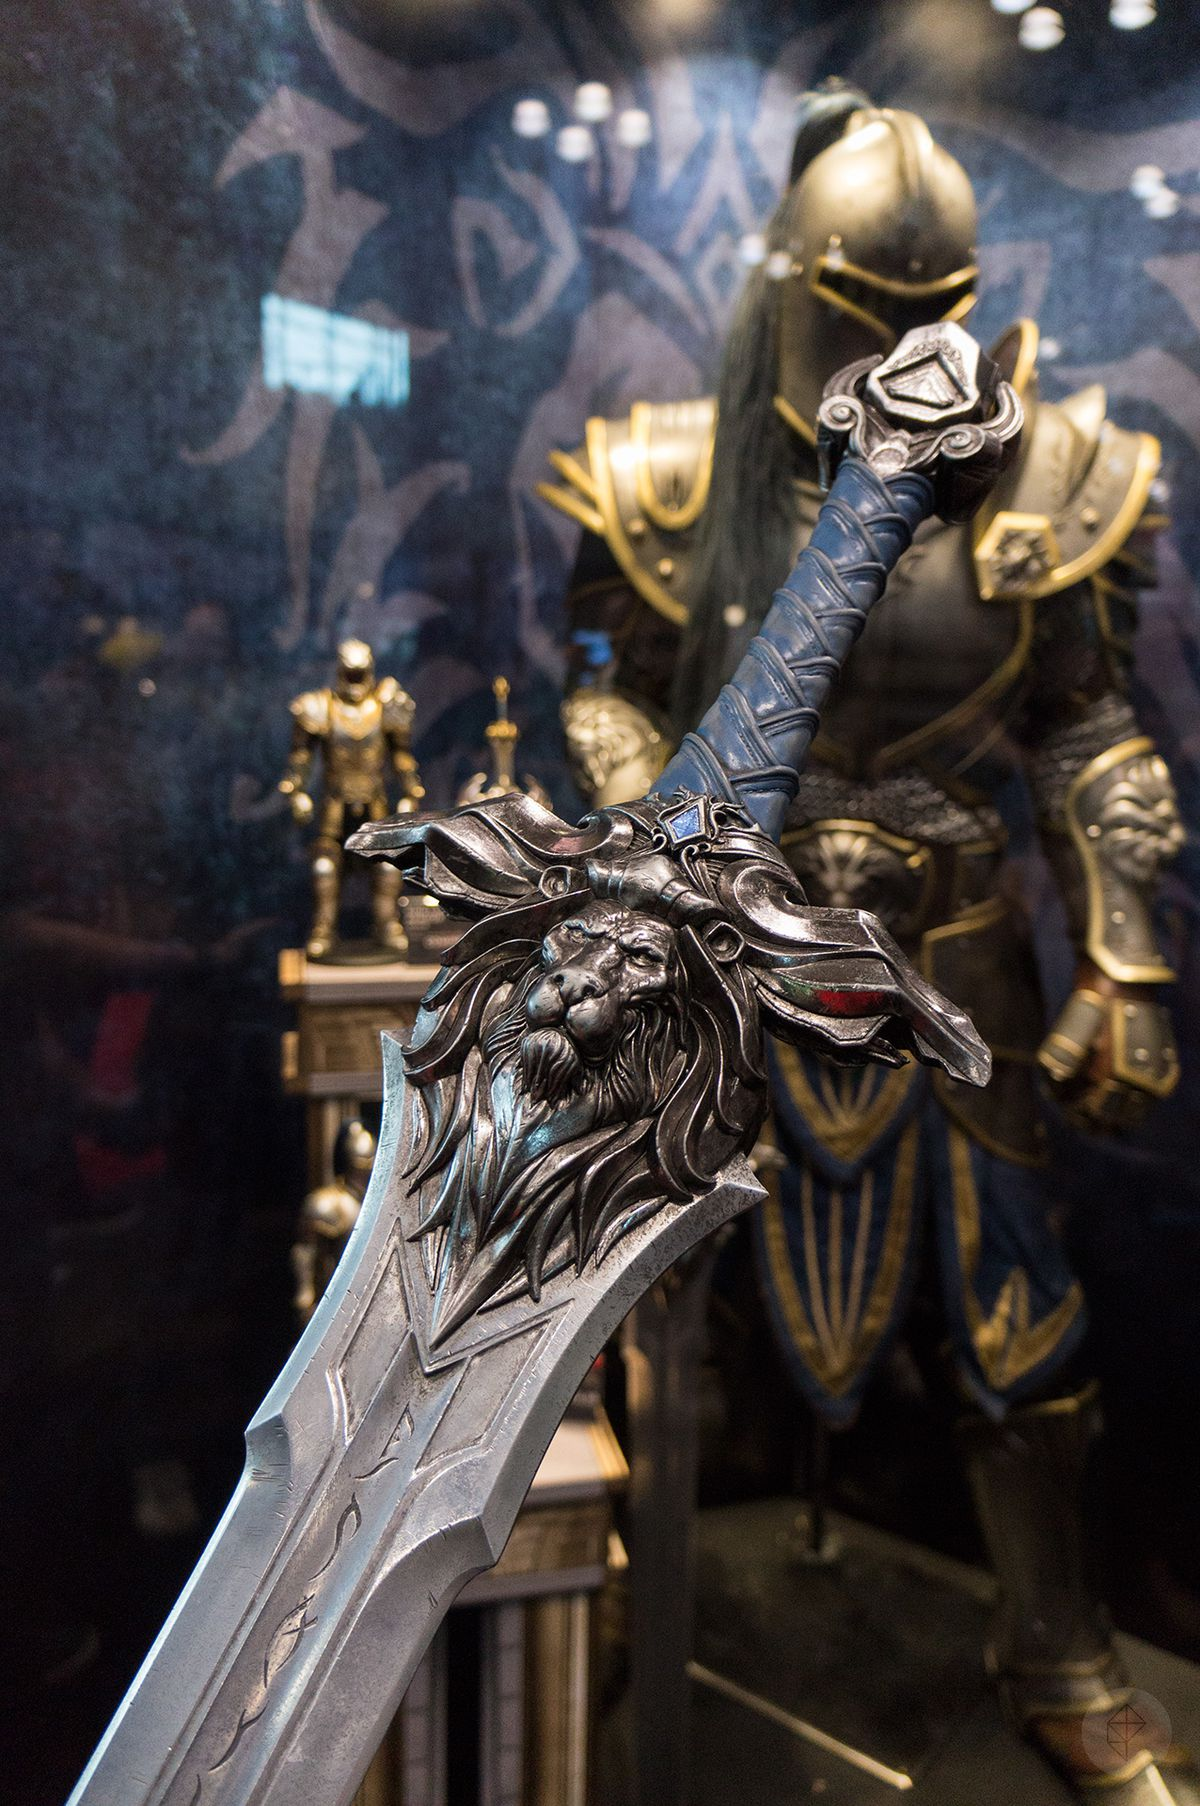 the hilt, crossguard, and lower part of an Alliance sword at the Weta Workshop booth at NYCC 2015